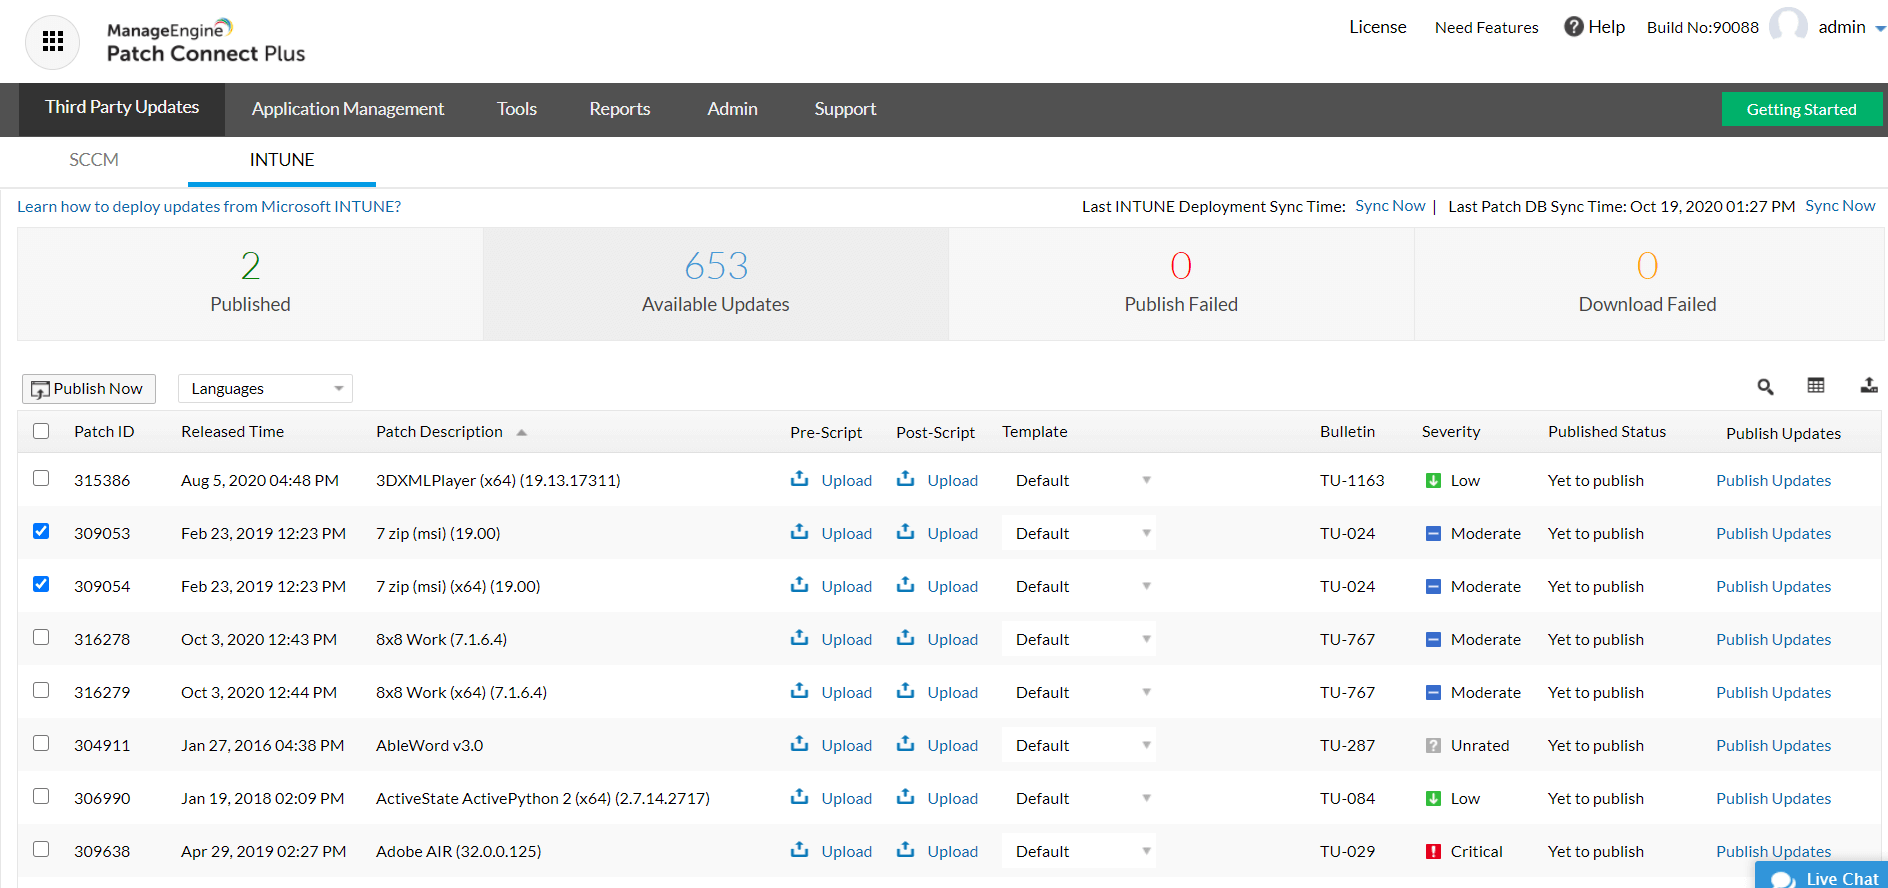 Microsoft Intune Patch Management - ManageEngine Patch Connect Plus